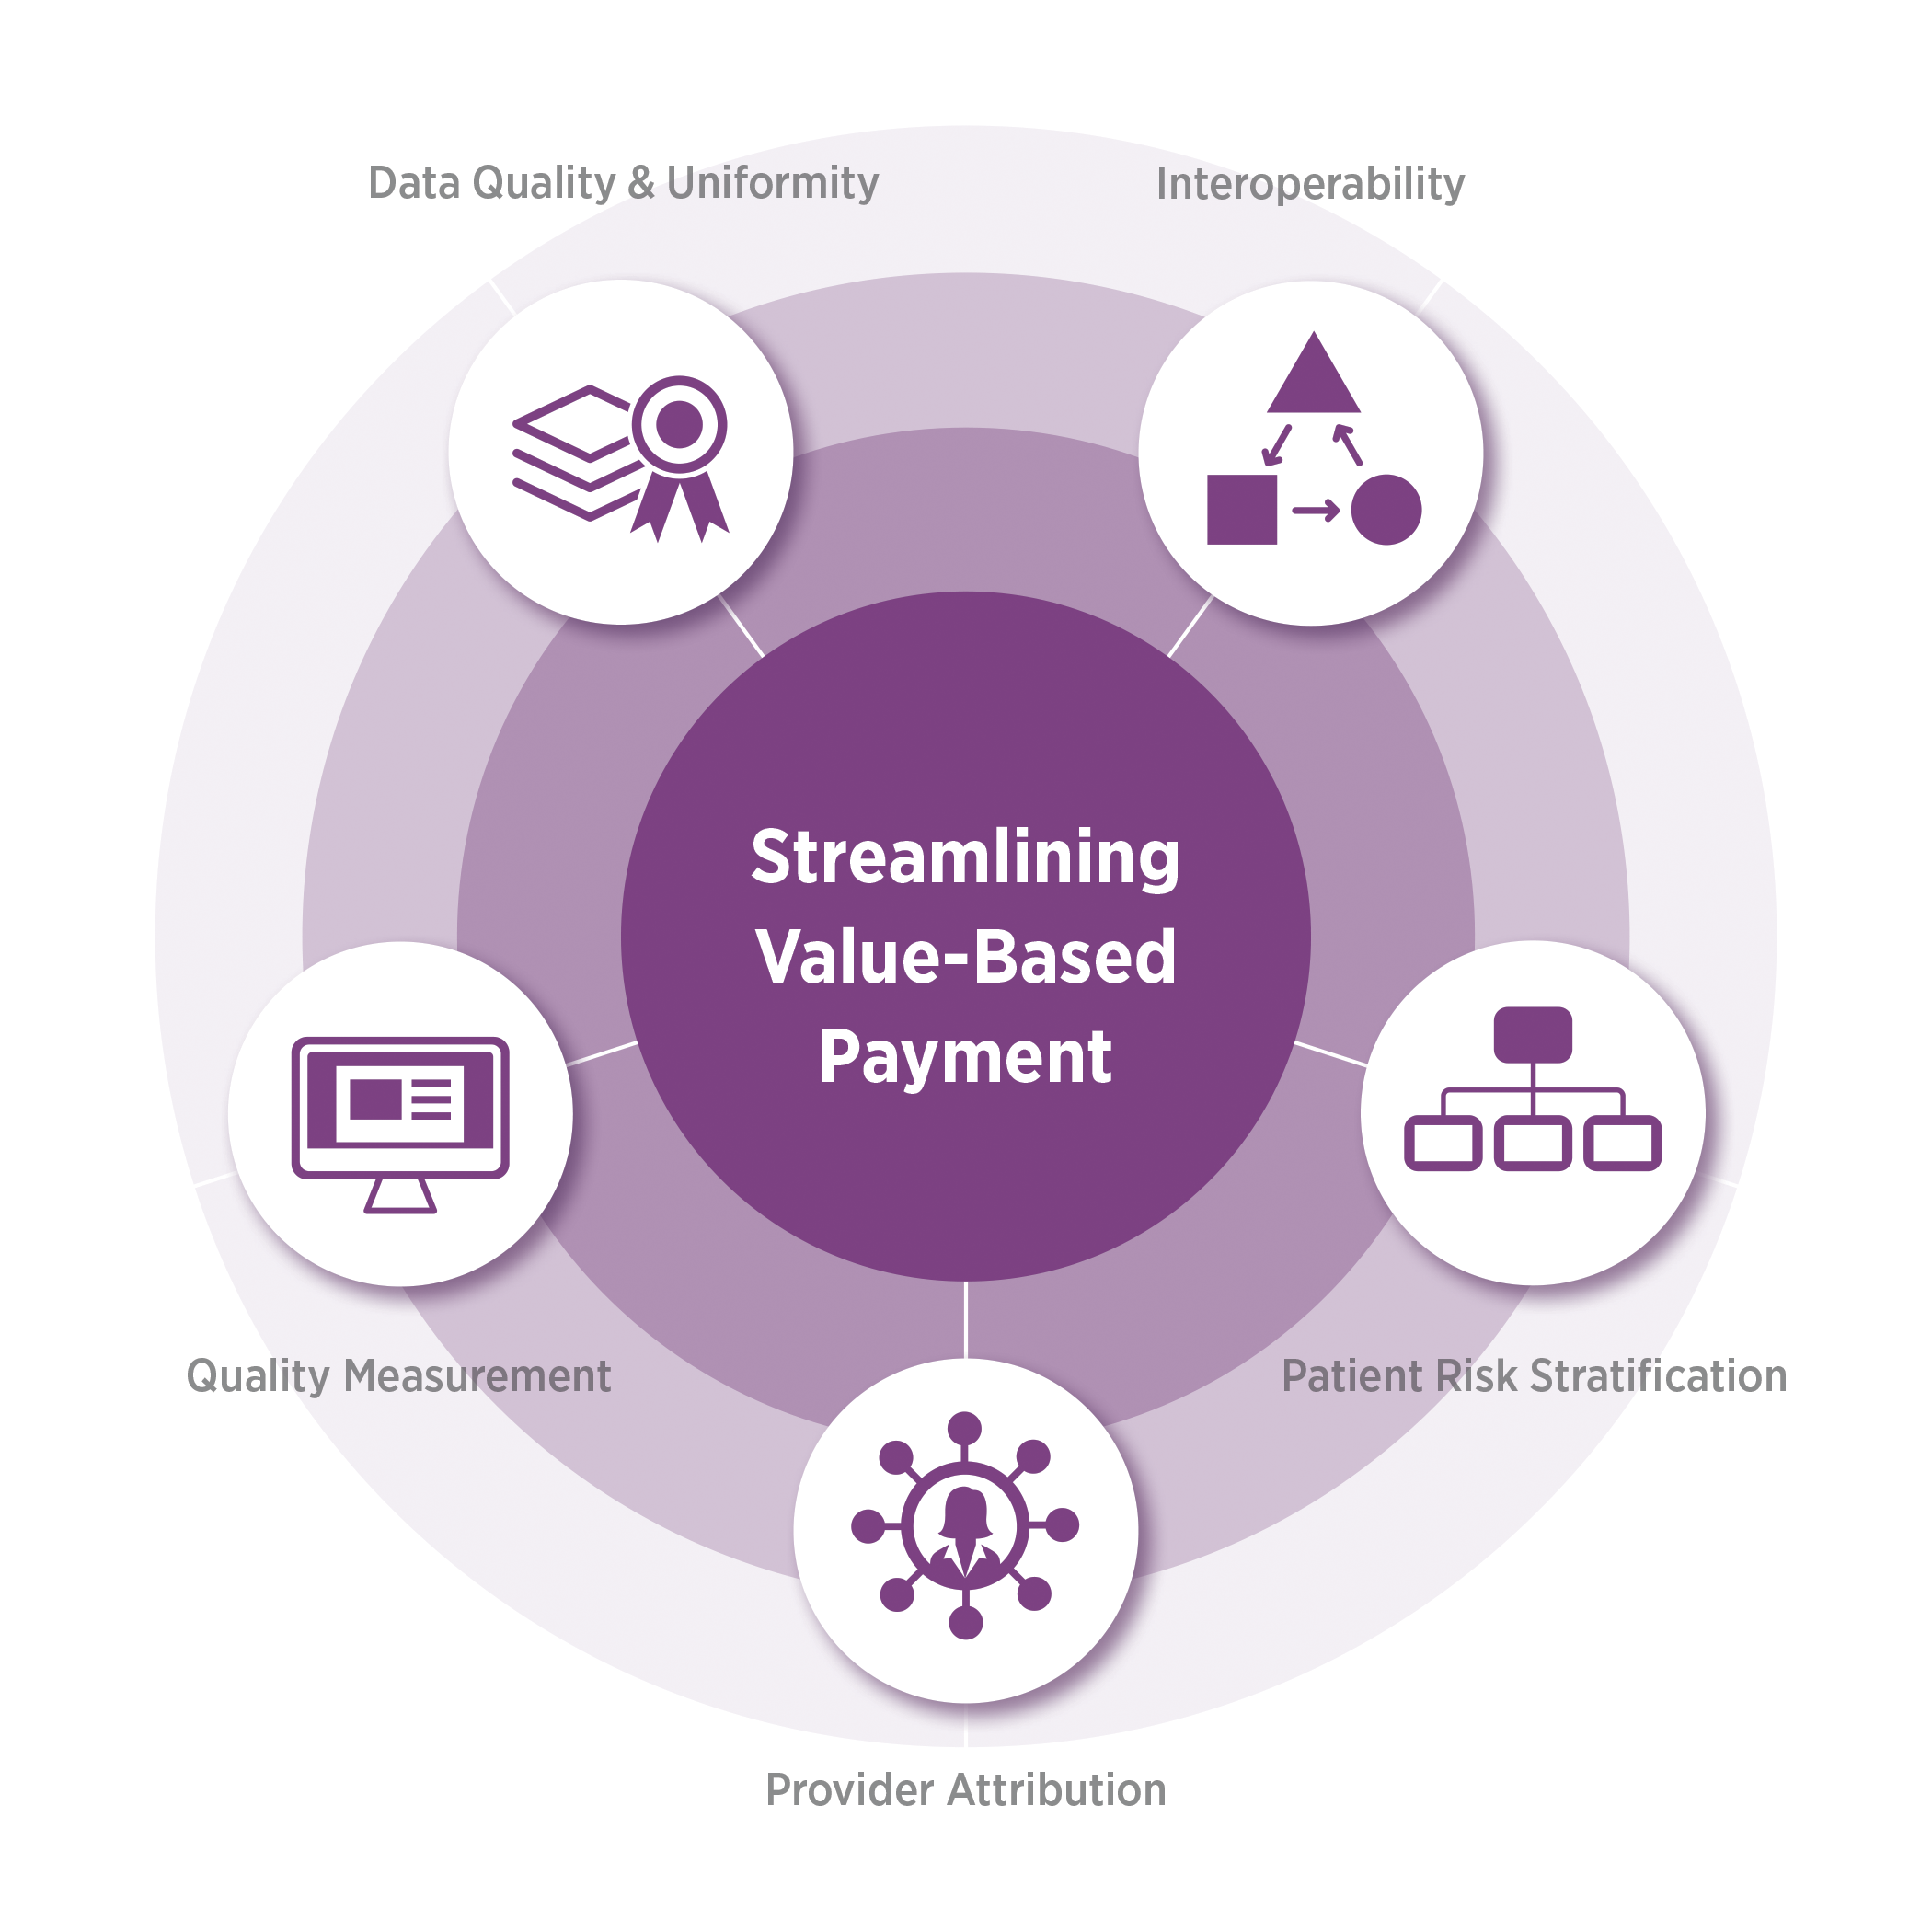 Image: Opportunity areas to streamline value-based payments